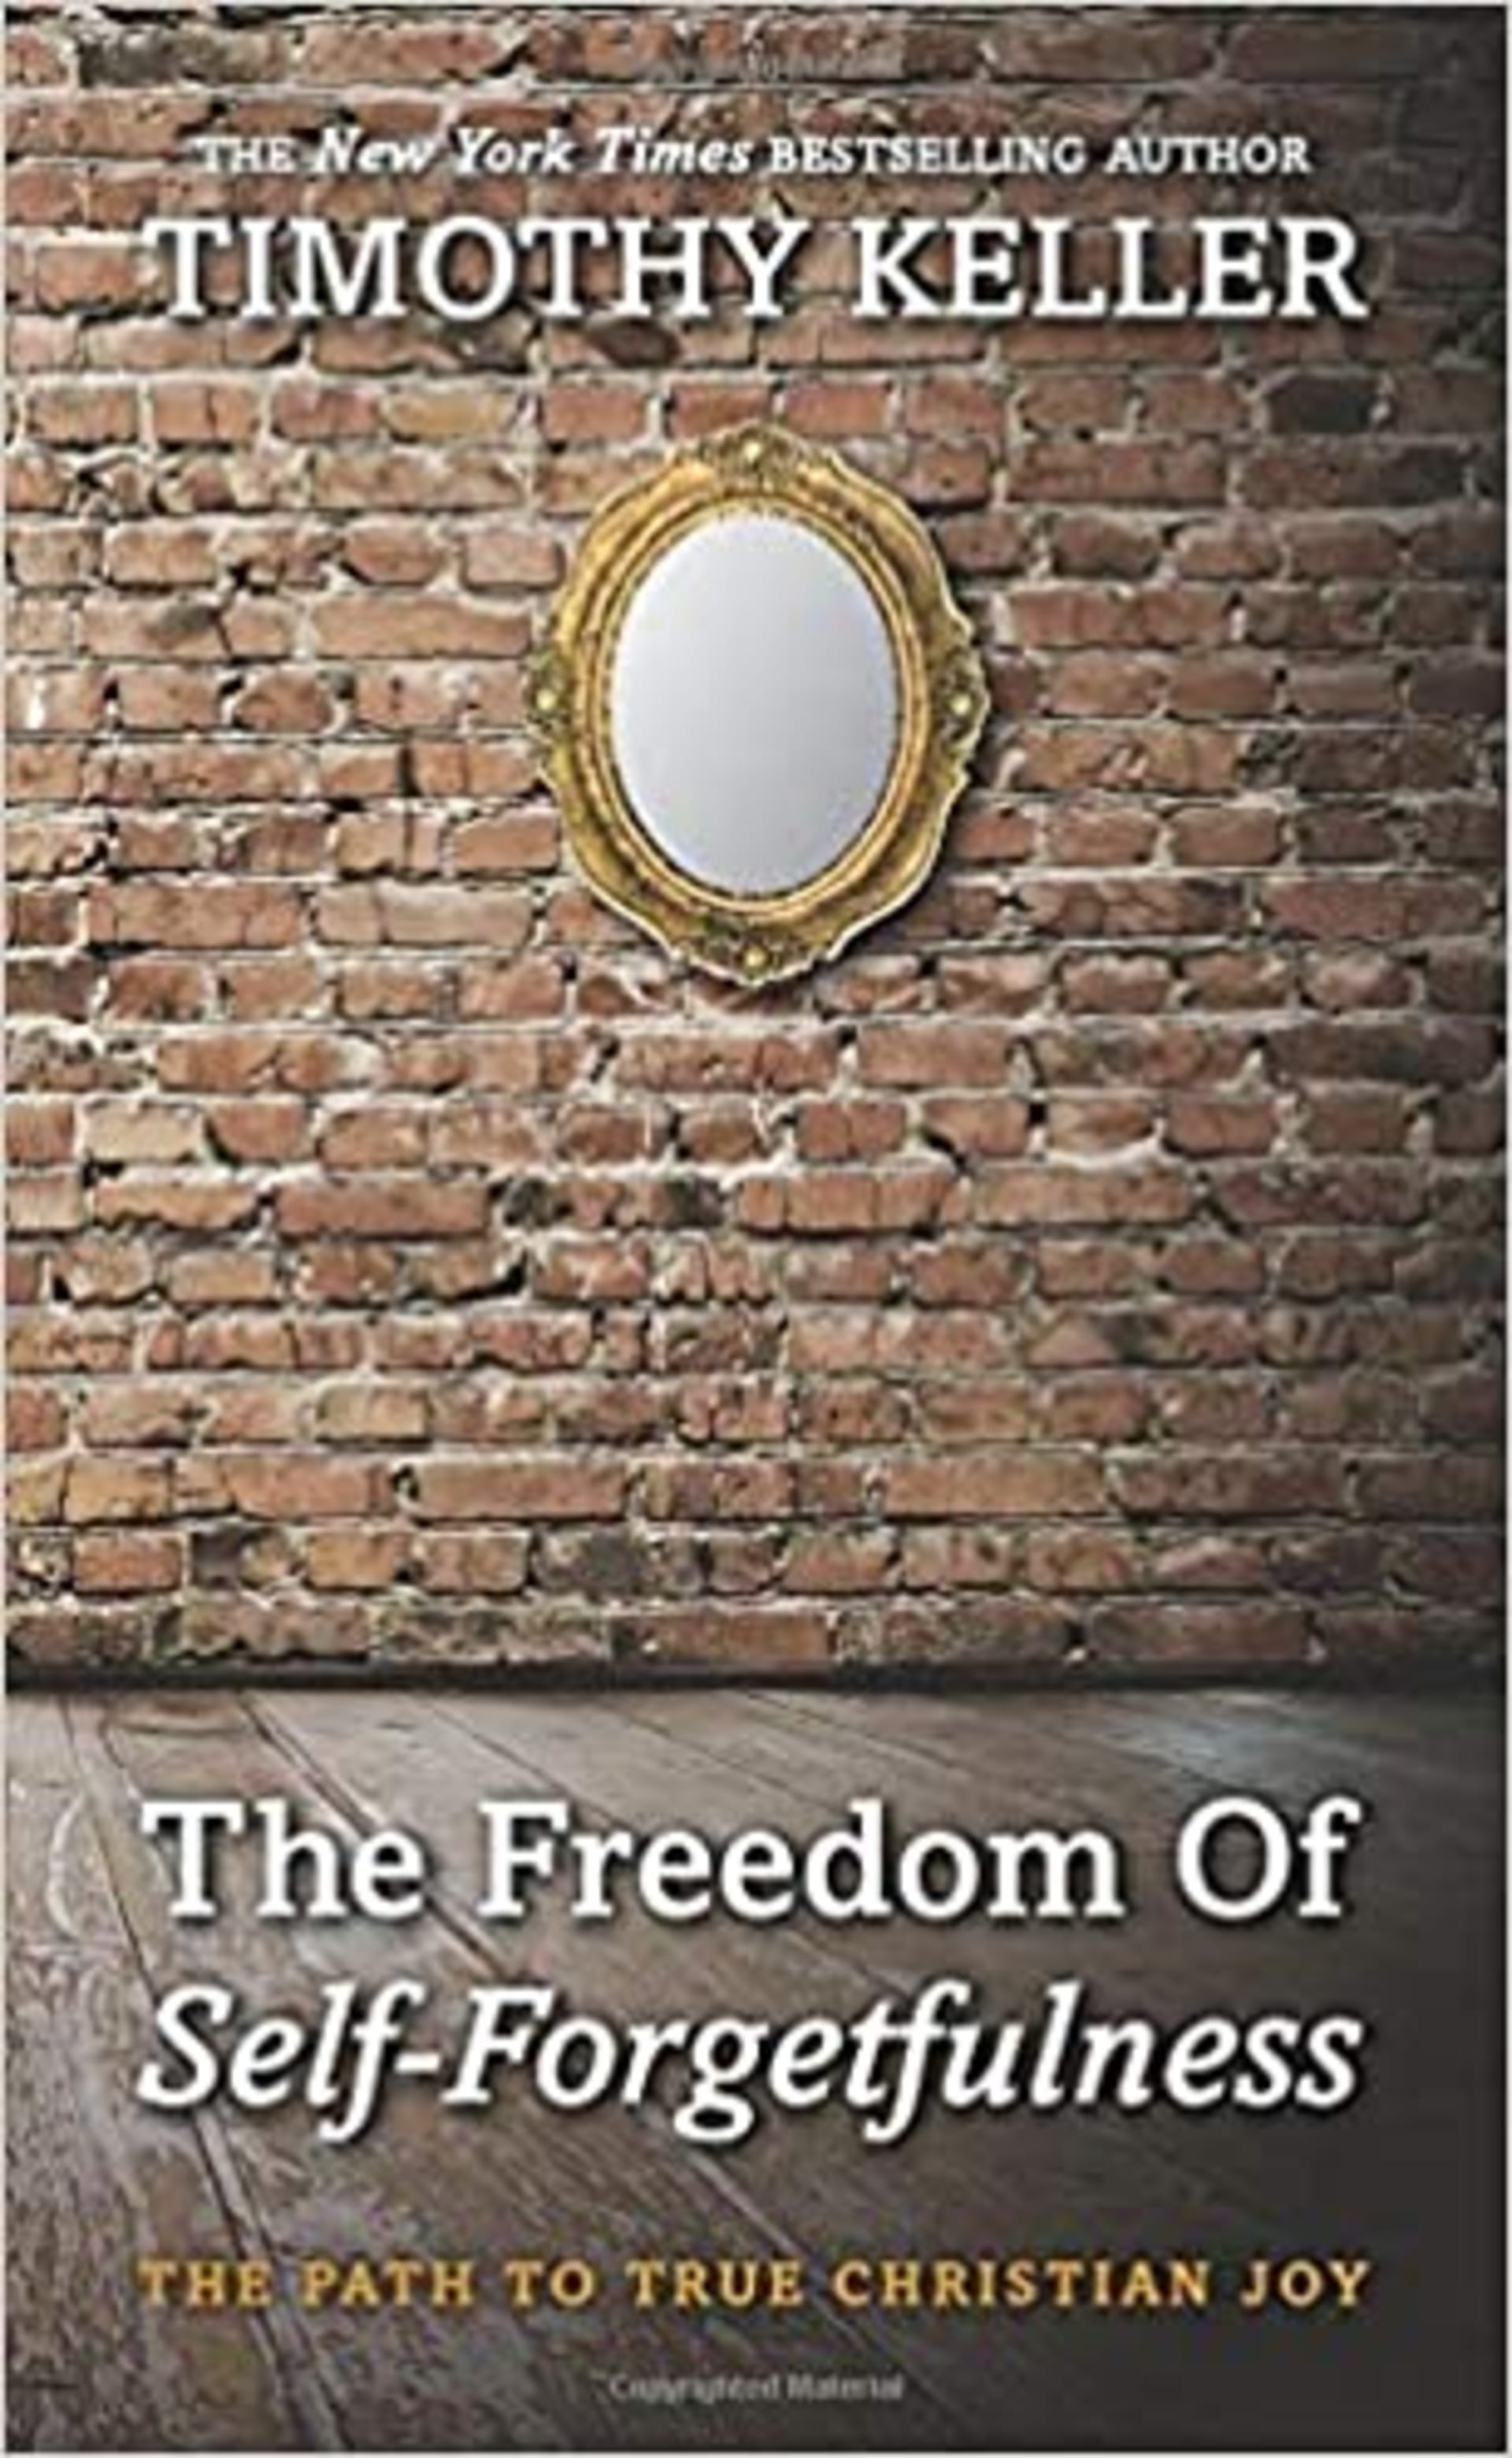 The Freedom of Self Forgetfulness: The Path to True Christian Joy | Timothy Keller